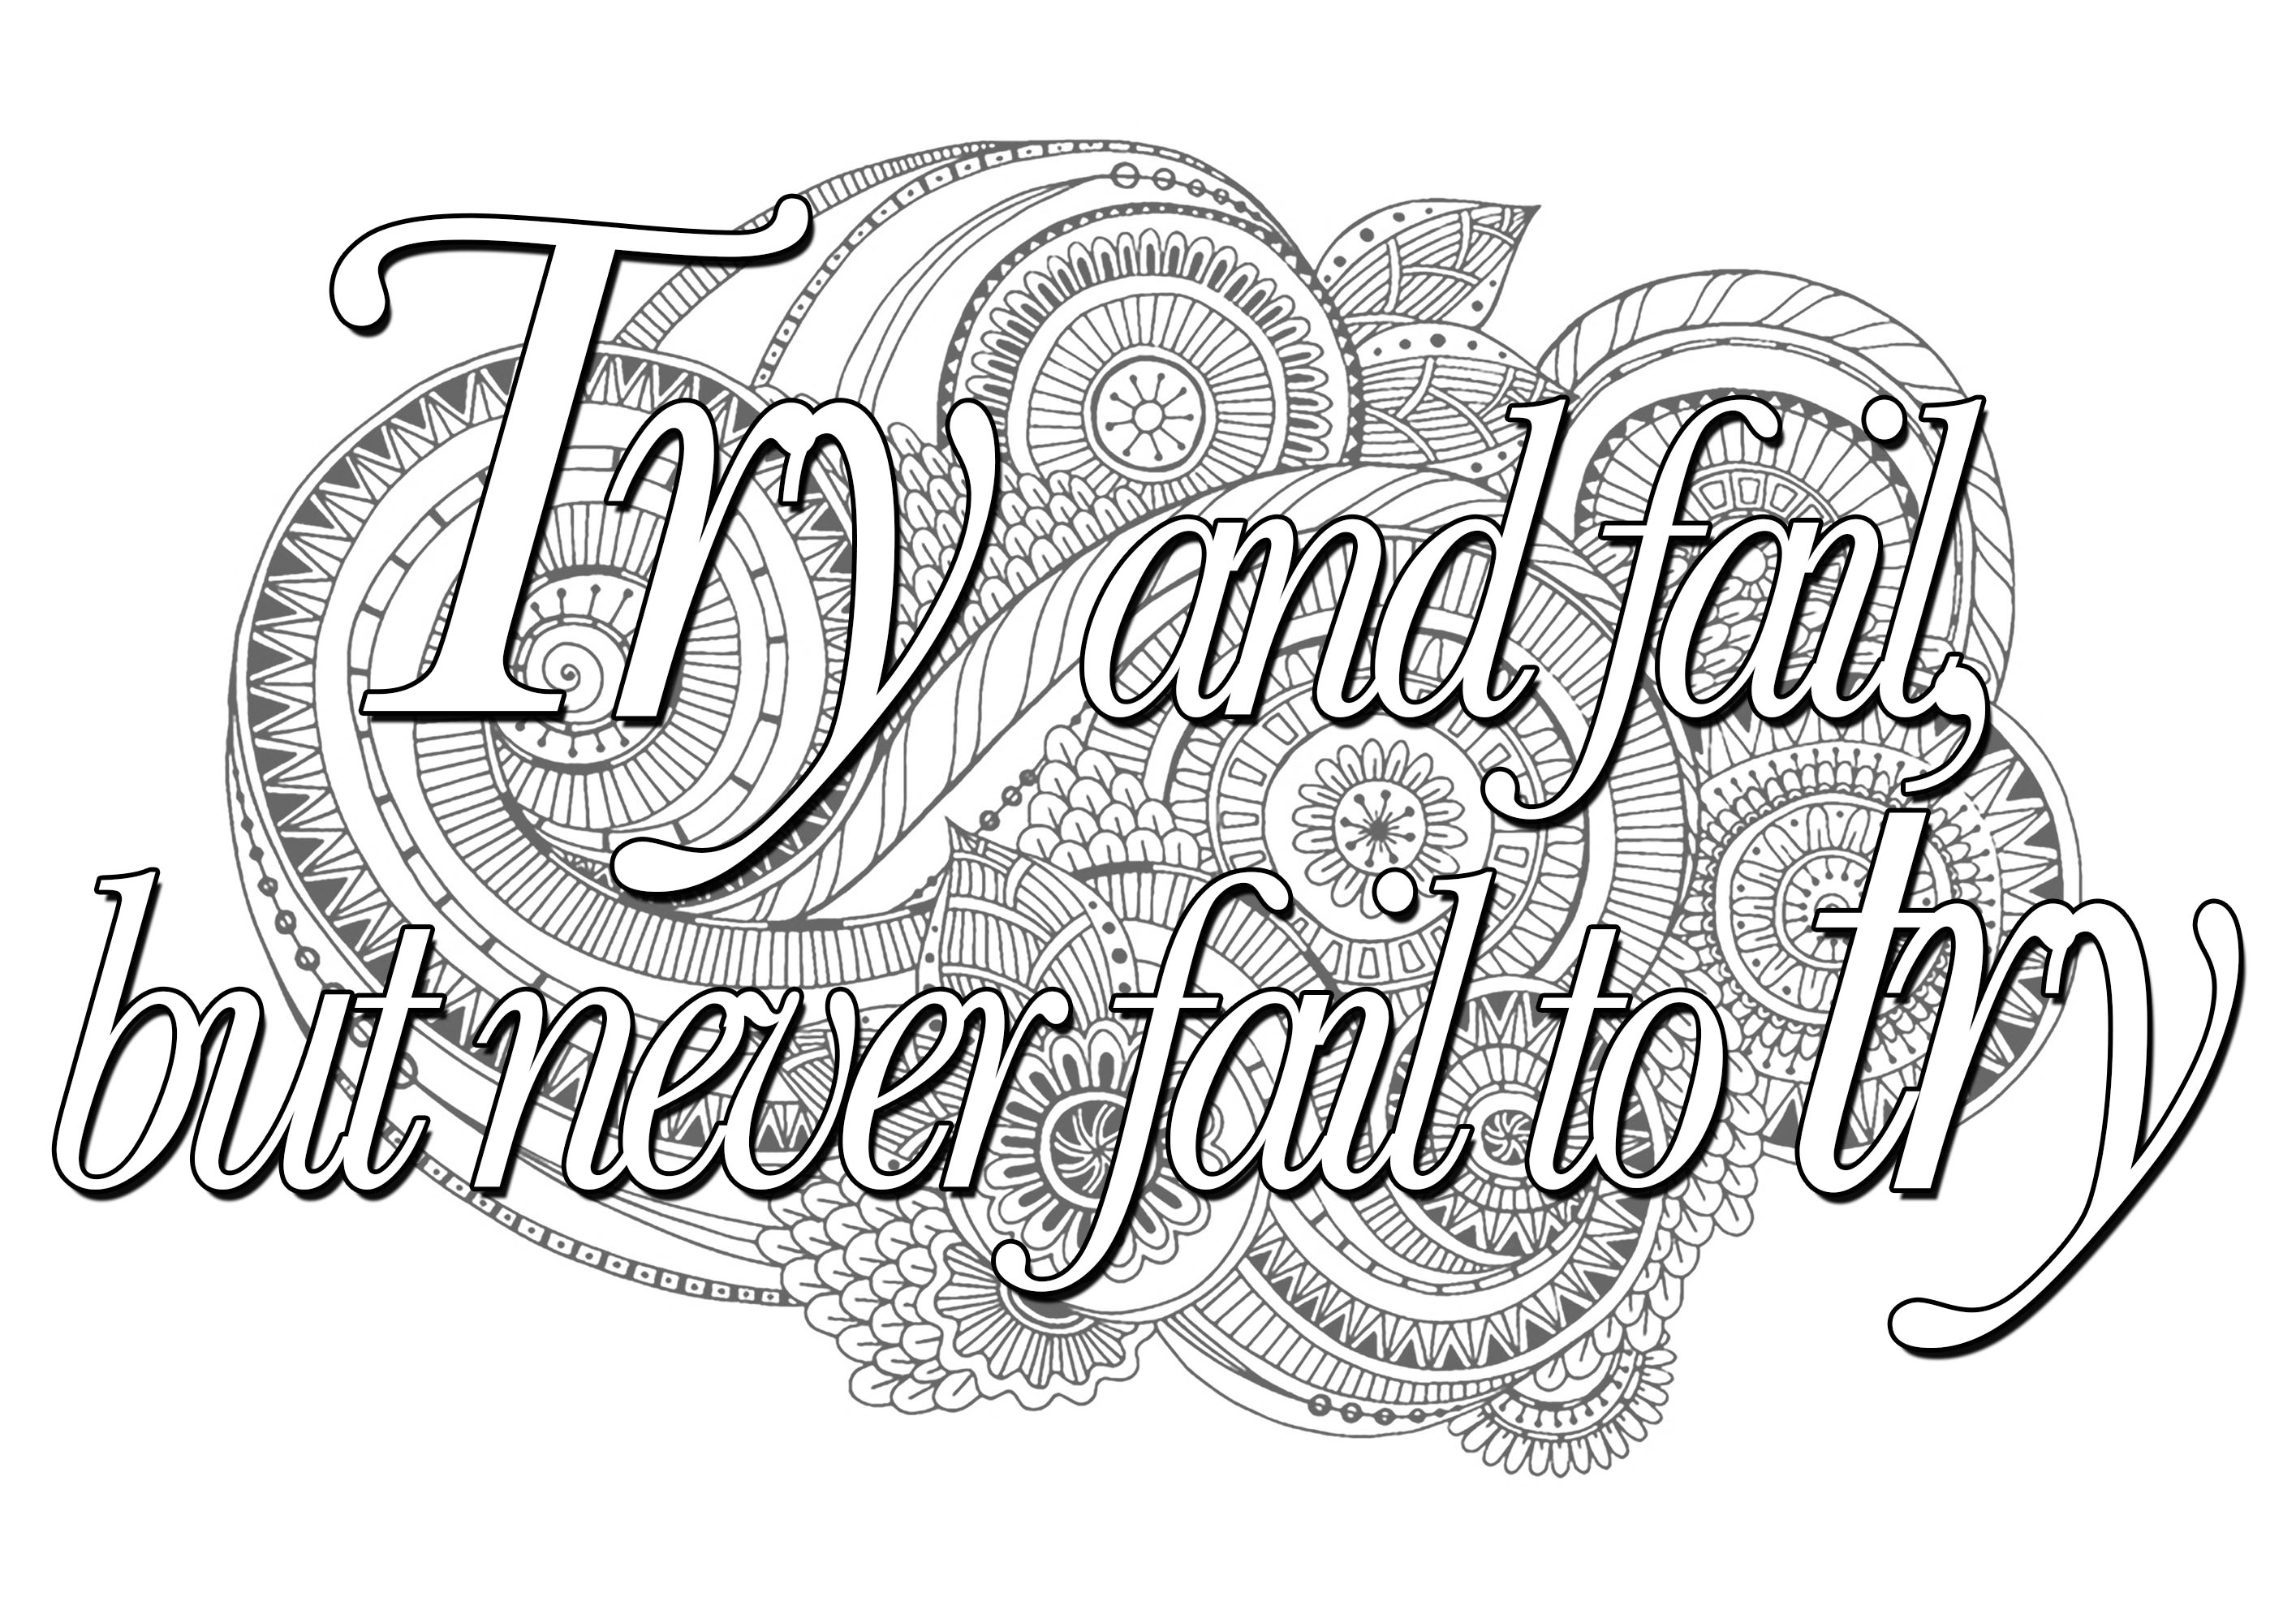 'Try and fail but never fail to try' : Quote to color, with beautiful Mandalas in background